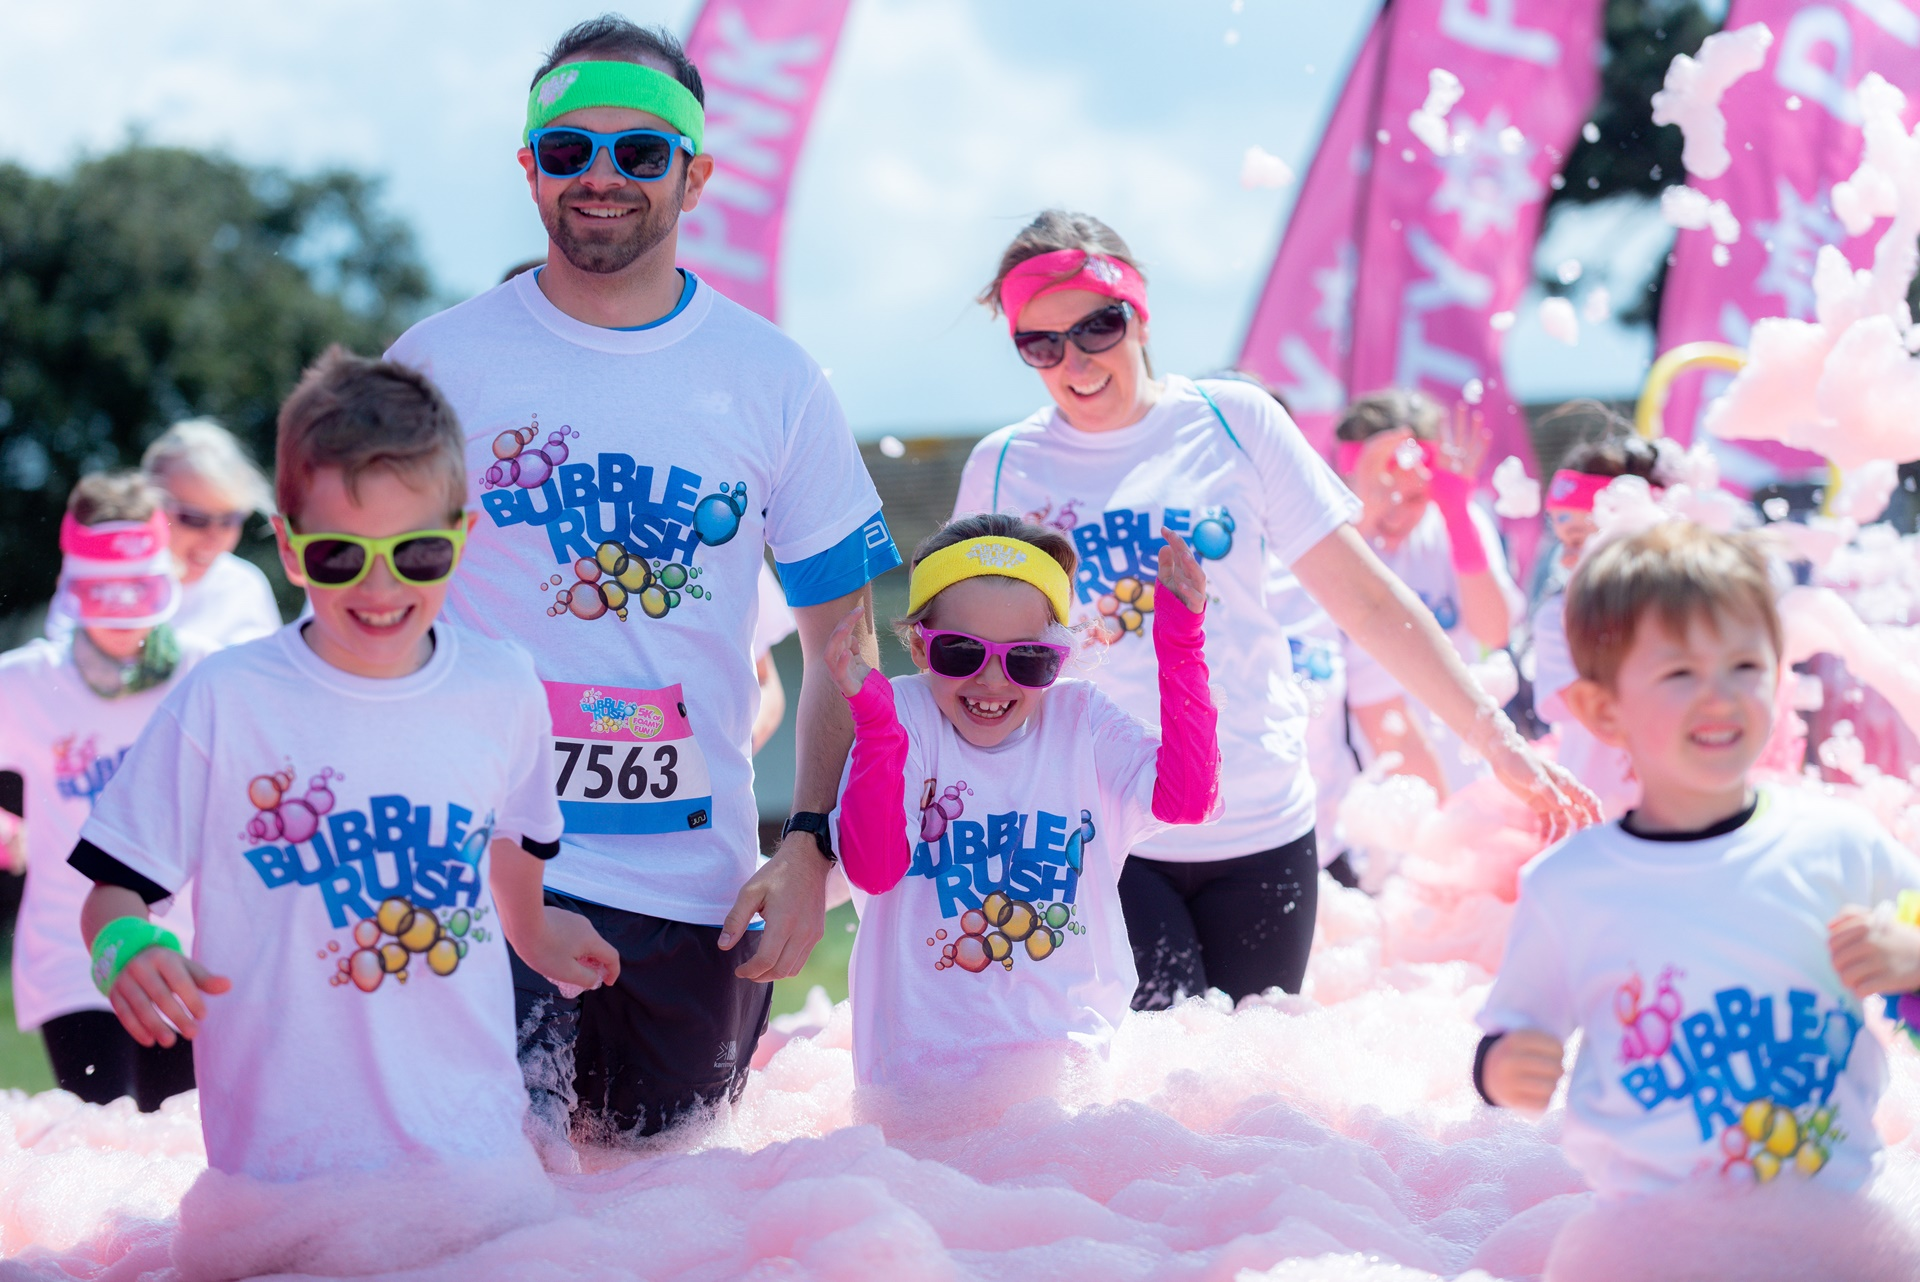 Bubble Rush charity event to raise funds for Naomi House and Jacksplace held on Southsea Common, Portsmouth, Hampshire